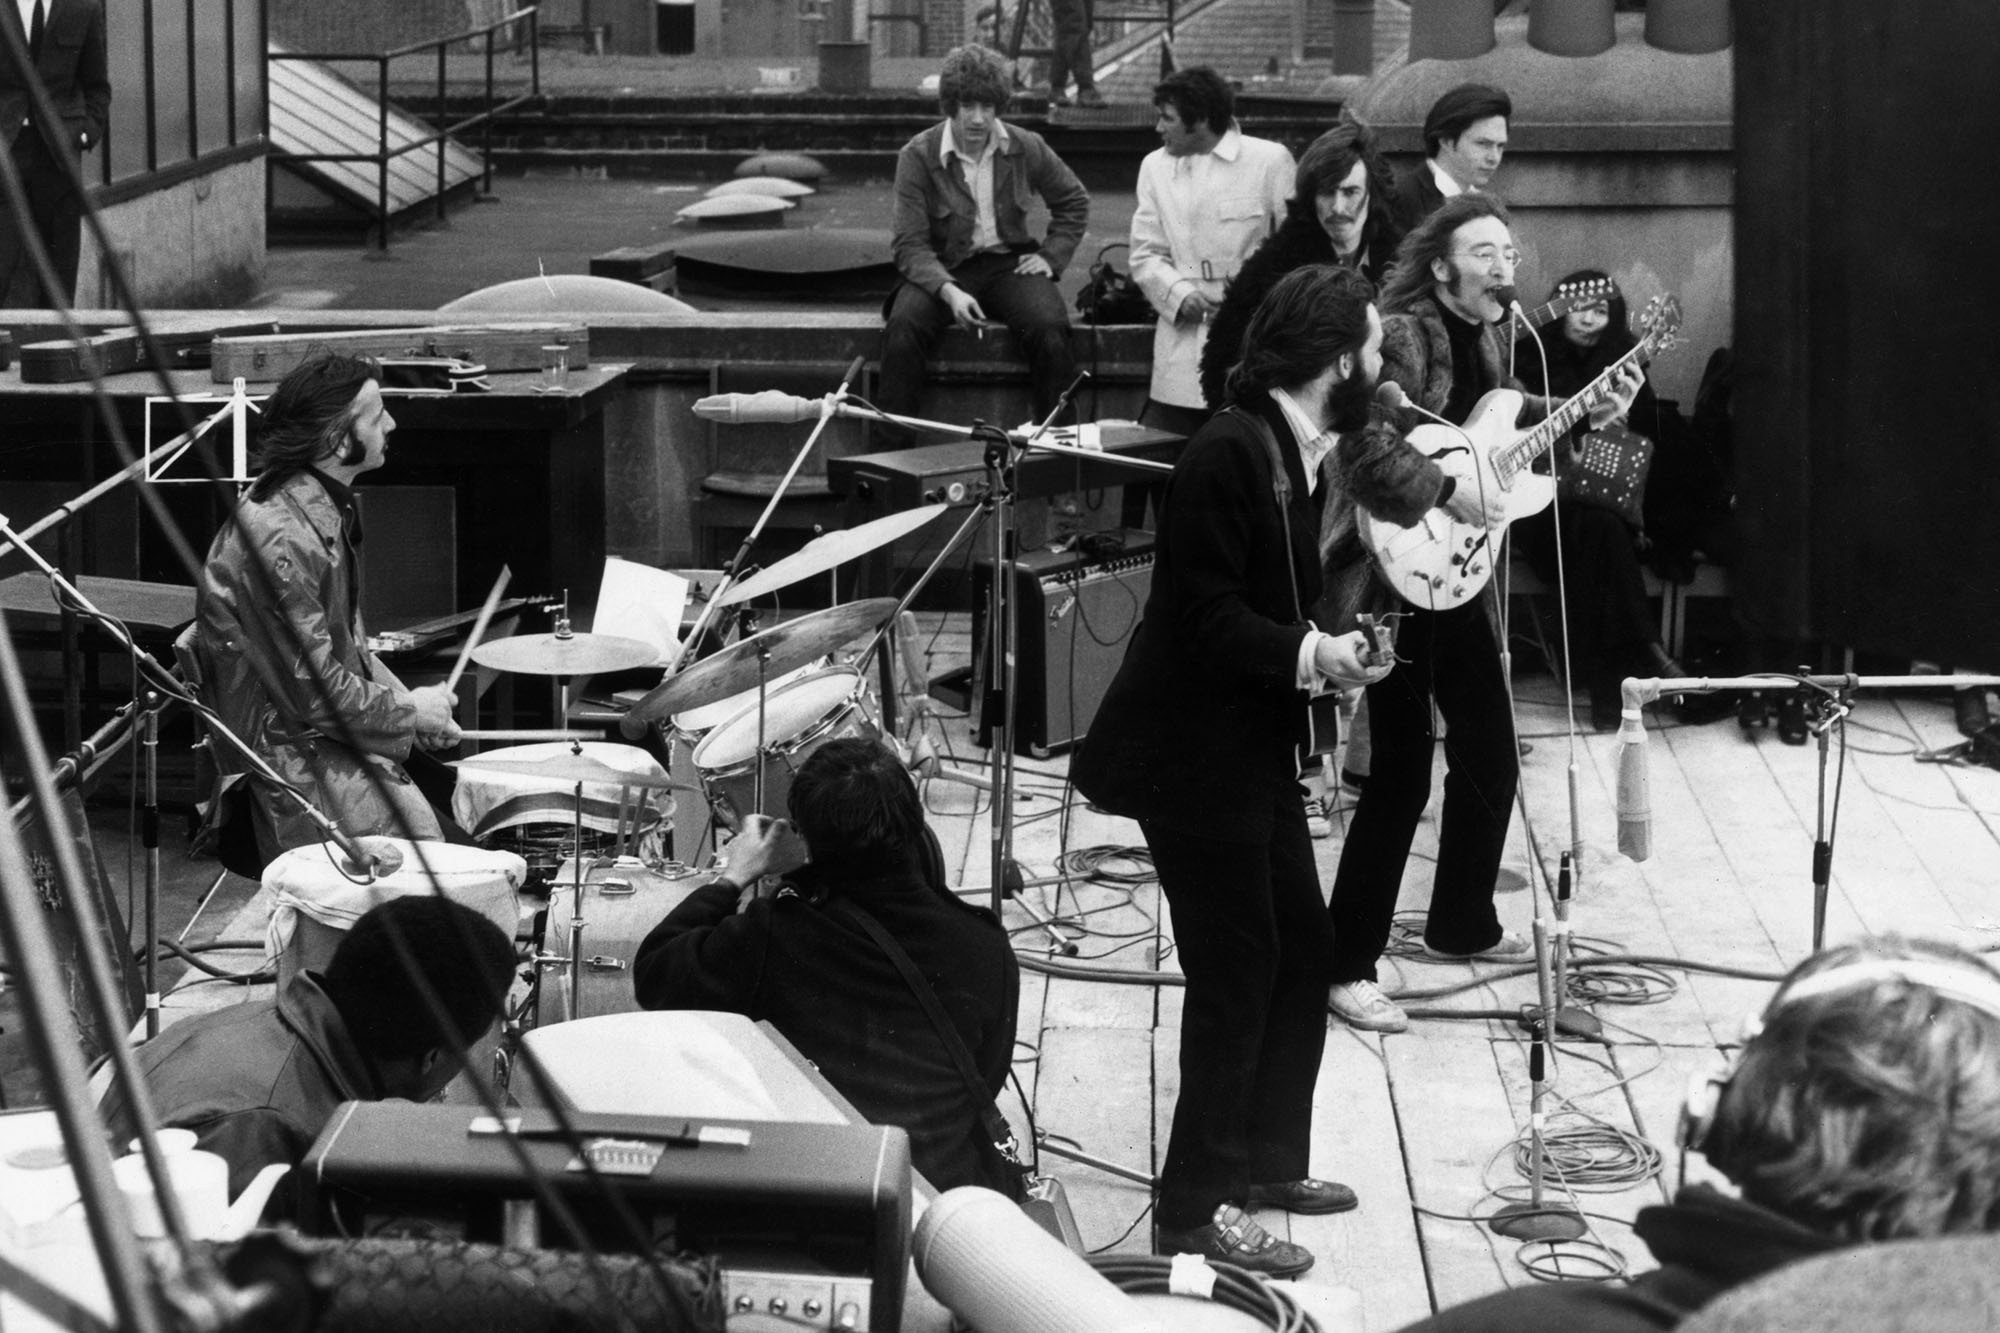 Inside The Beatles final live performance and disastrous collapse